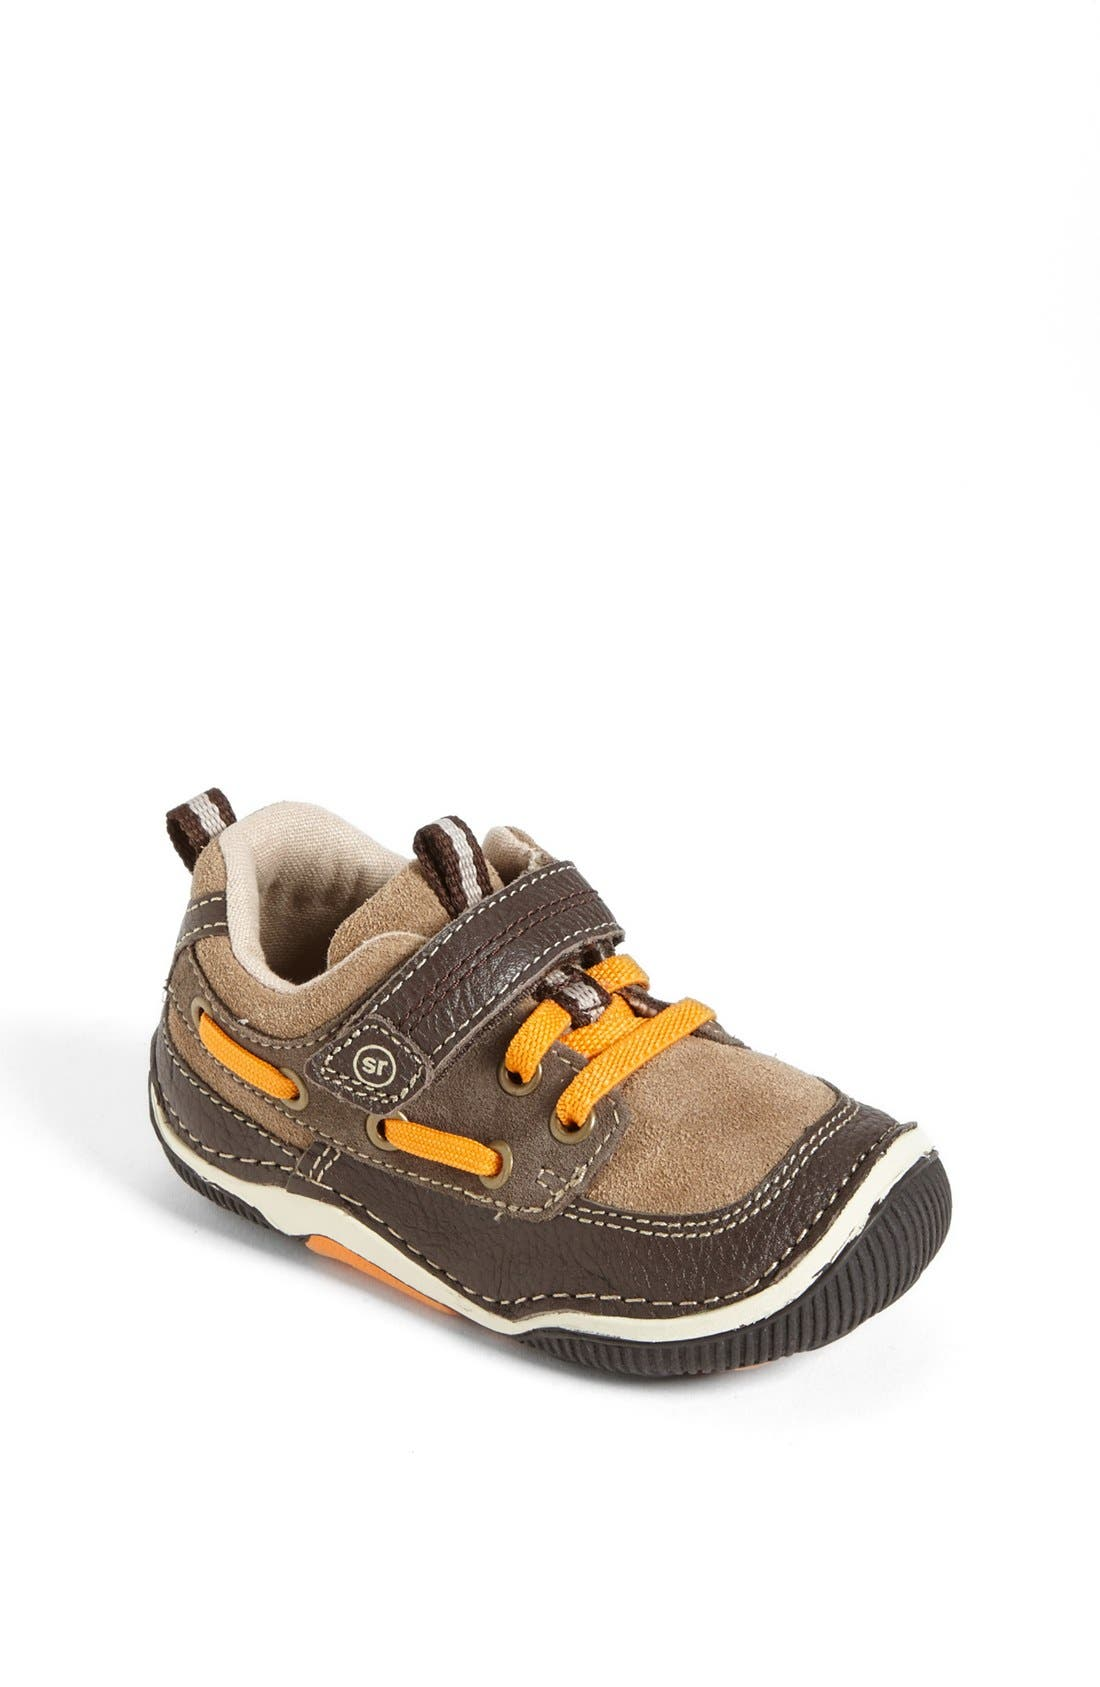 Main Image - Stride Rite 'Mosby' Sneaker (Baby, Walker & Toddler)